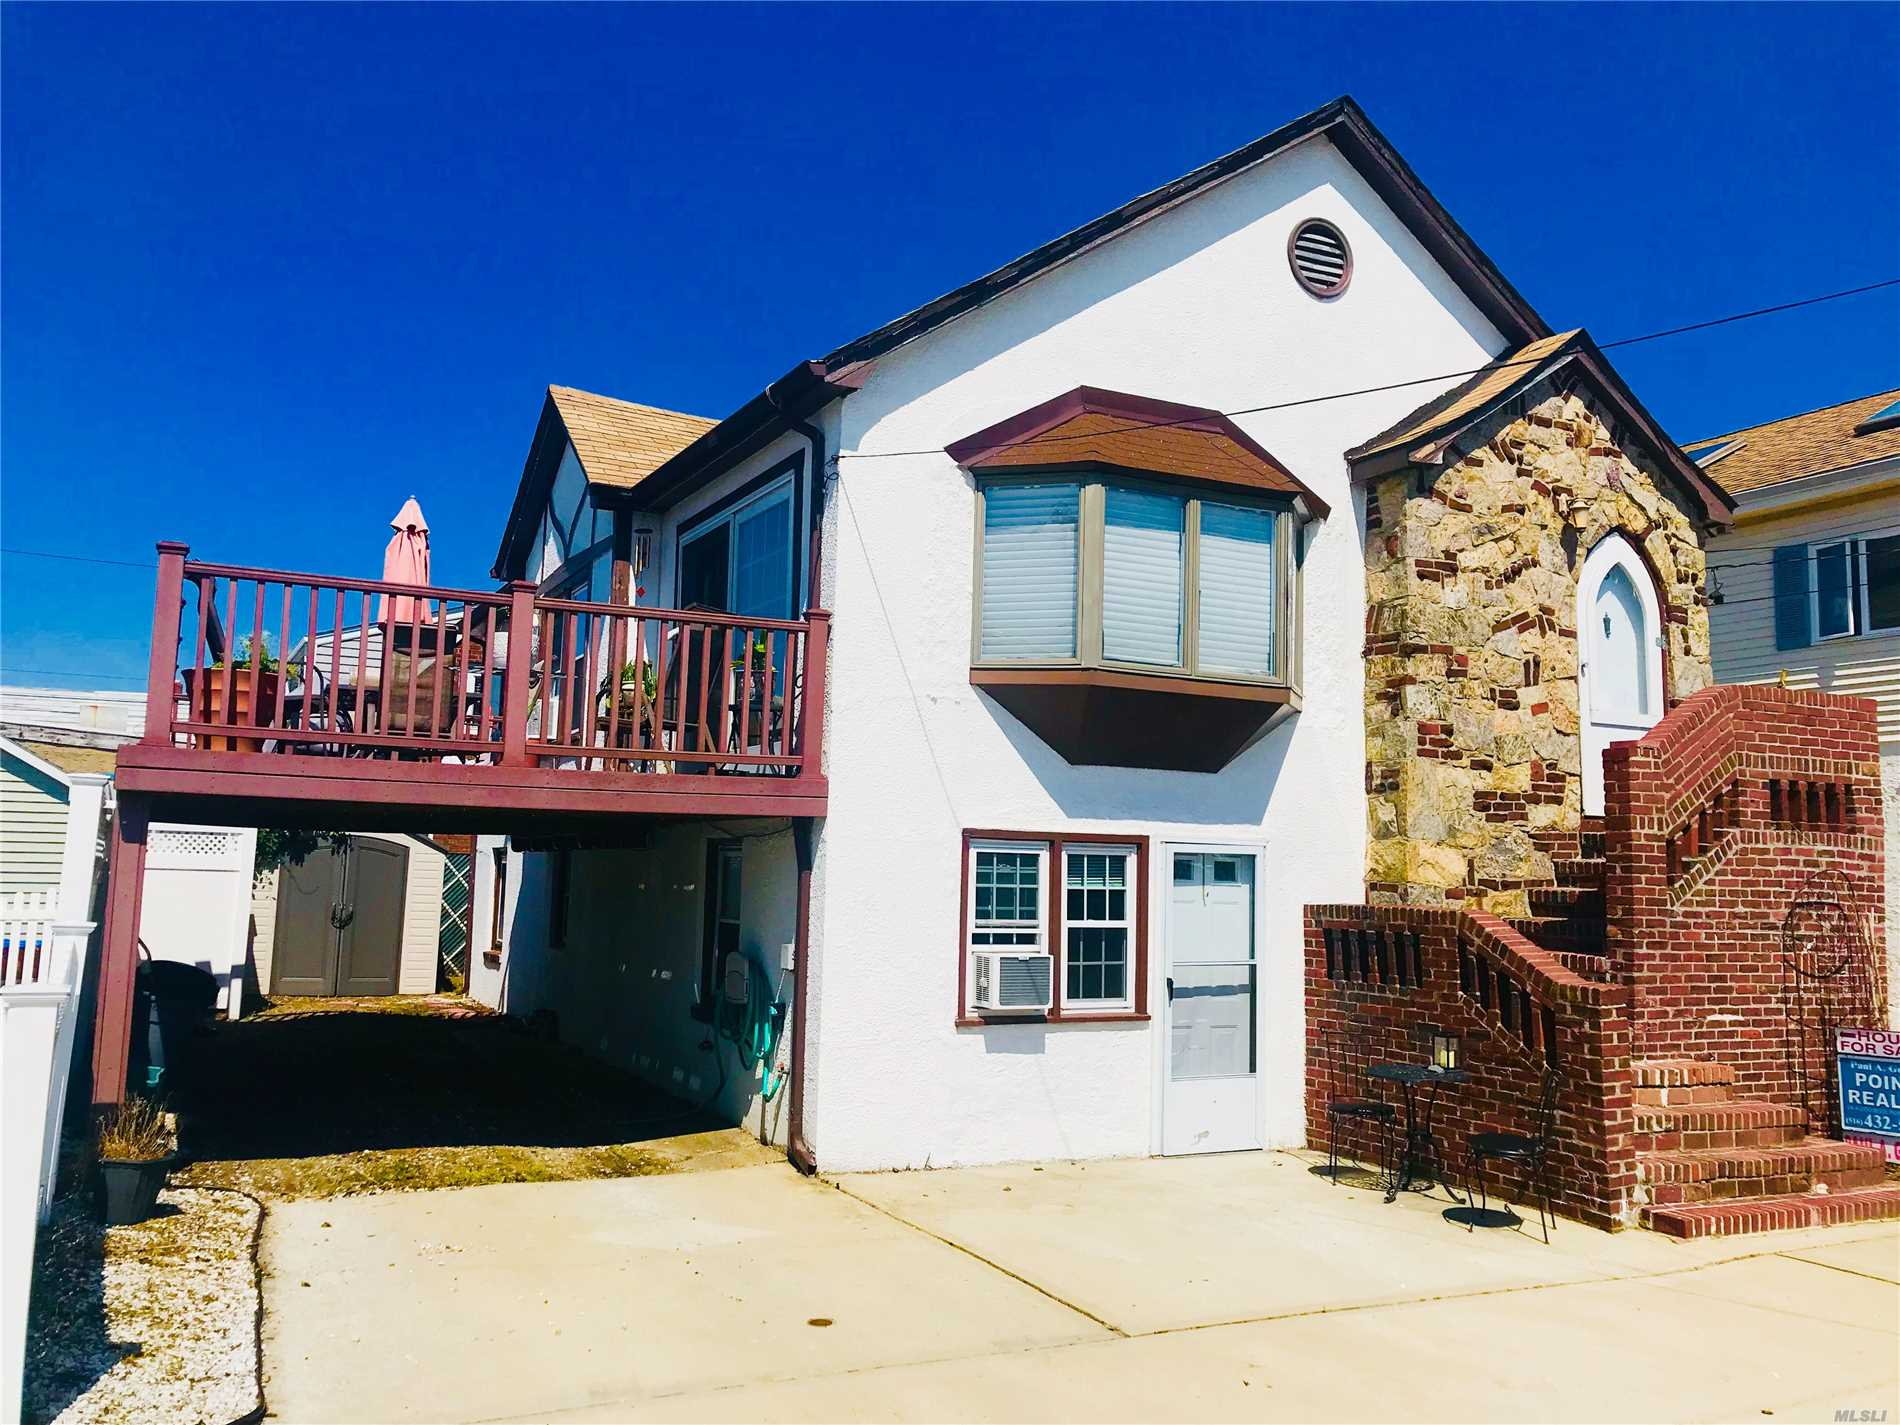 Rare Income House /Is Avail As Is / Move In Condition Tudor Style W 4 Bedroom And 2 Bathrooms /Sun Galore On This Nice Newly Built Sundeck Off The Living Room. Centrally Located To Be Anywhere By Walking!!! One Of A Kind ?low Taxes/ Must See ...